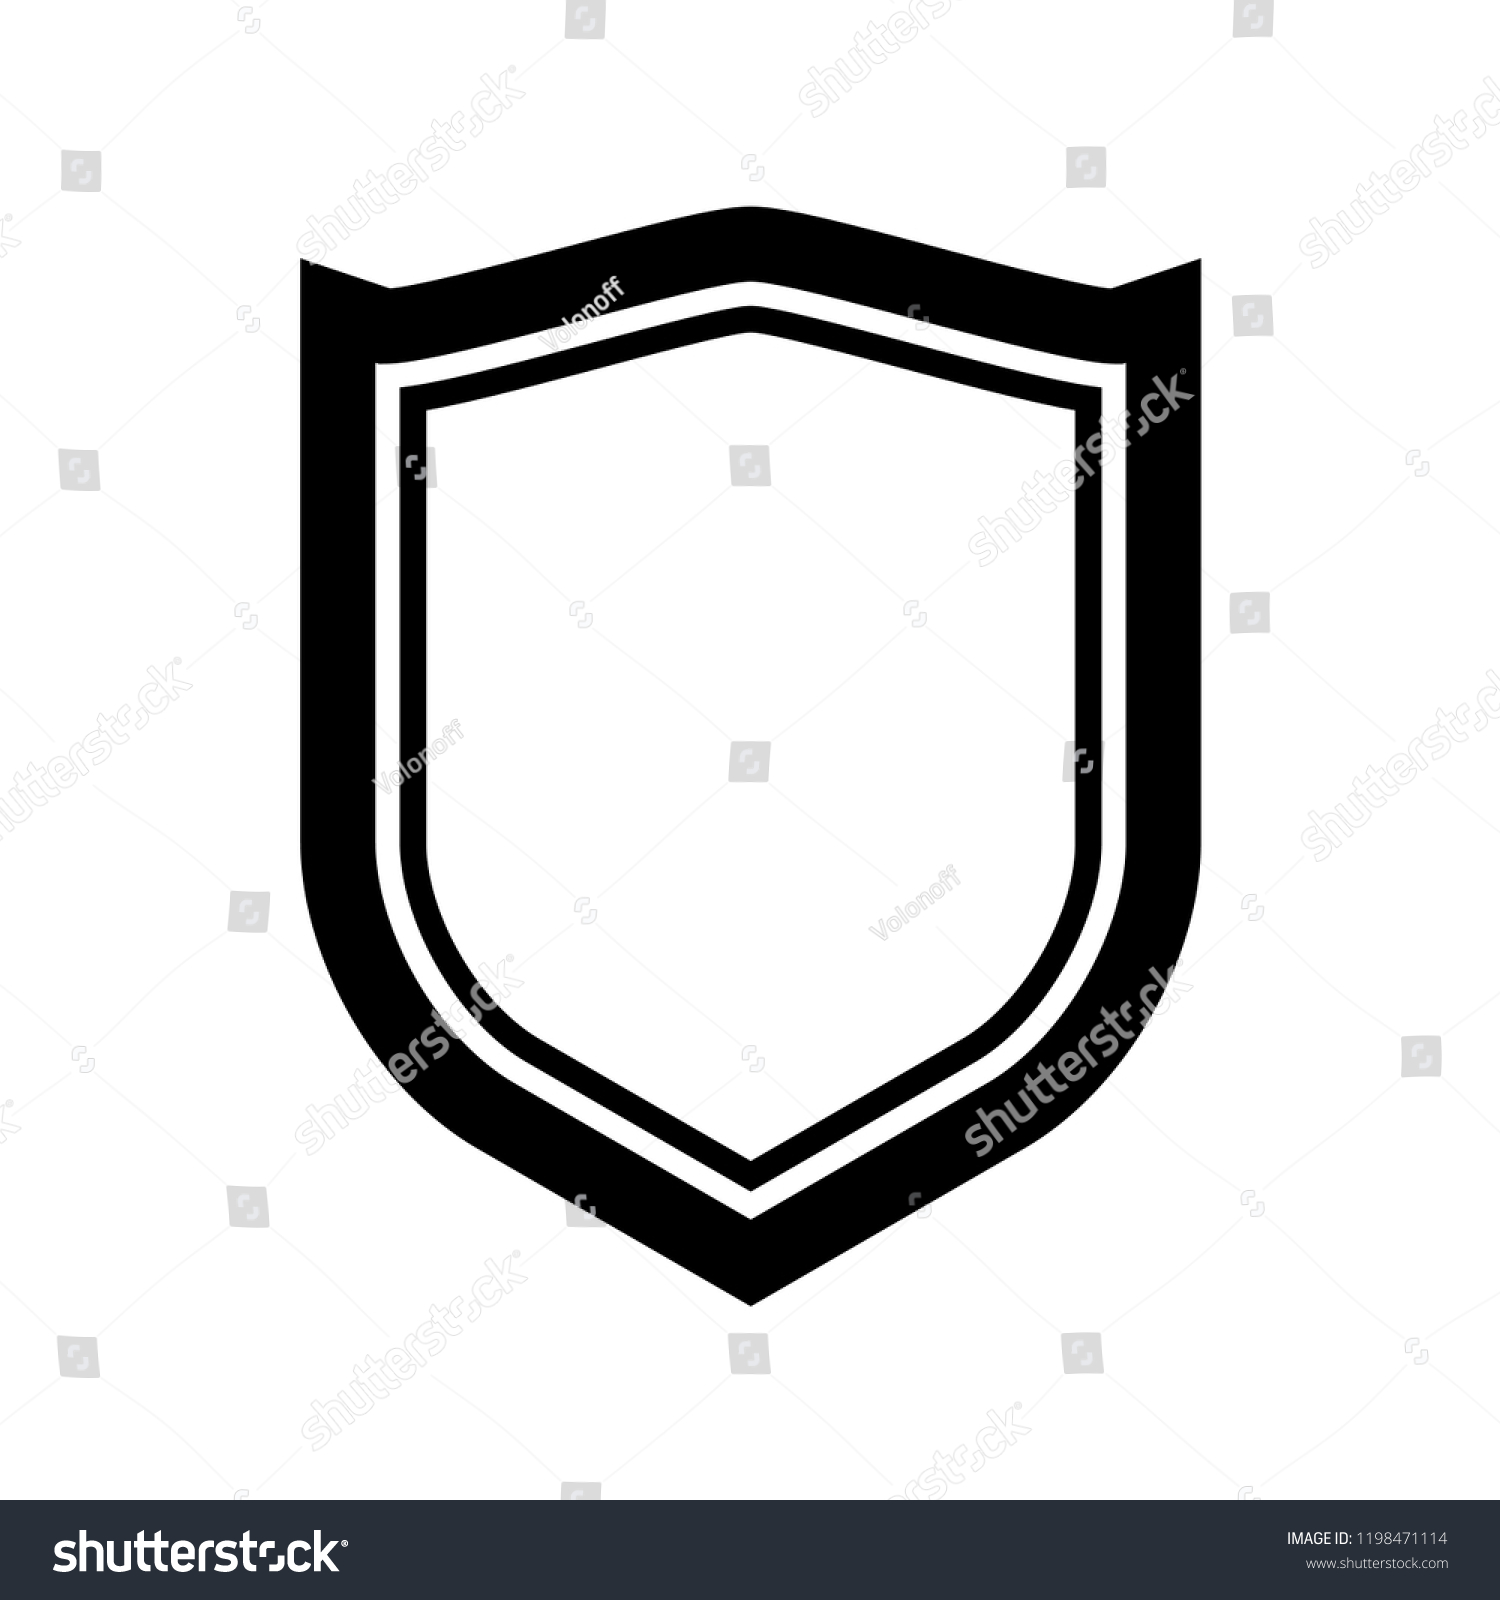 protect guard shield plain line concept stock vector (royalty free